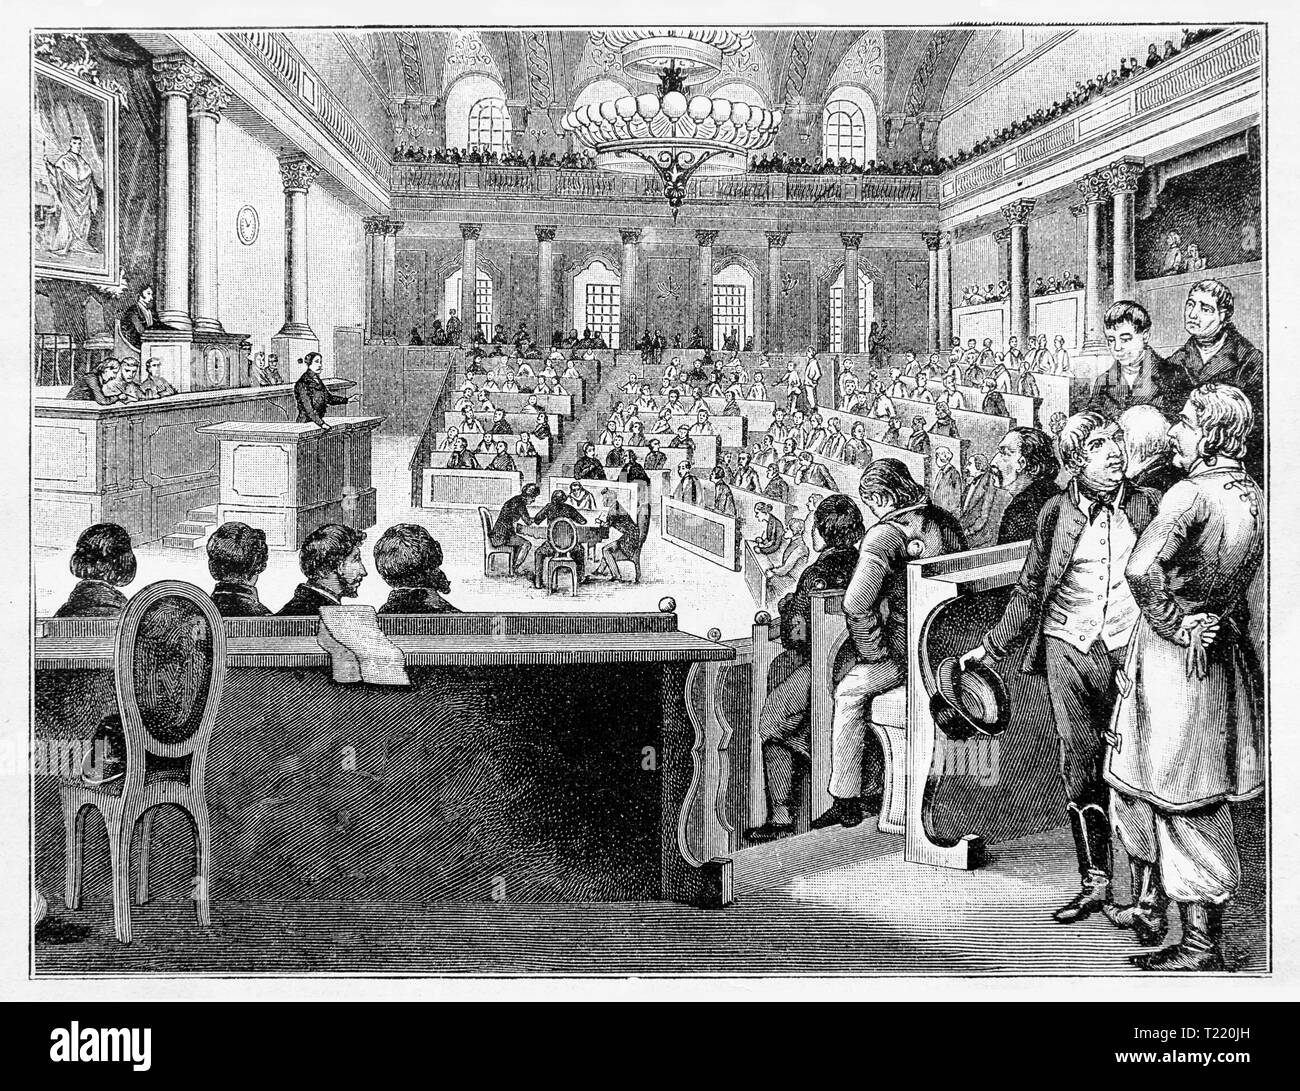 Meeting of the first Austrian Reichstag in Vienna / July 1848. Digital improved reproduction from Illustrated overview of the life of mankind in the 19th century, 1901 edition, Marx publishing house, St. Petersburg. - Stock Image